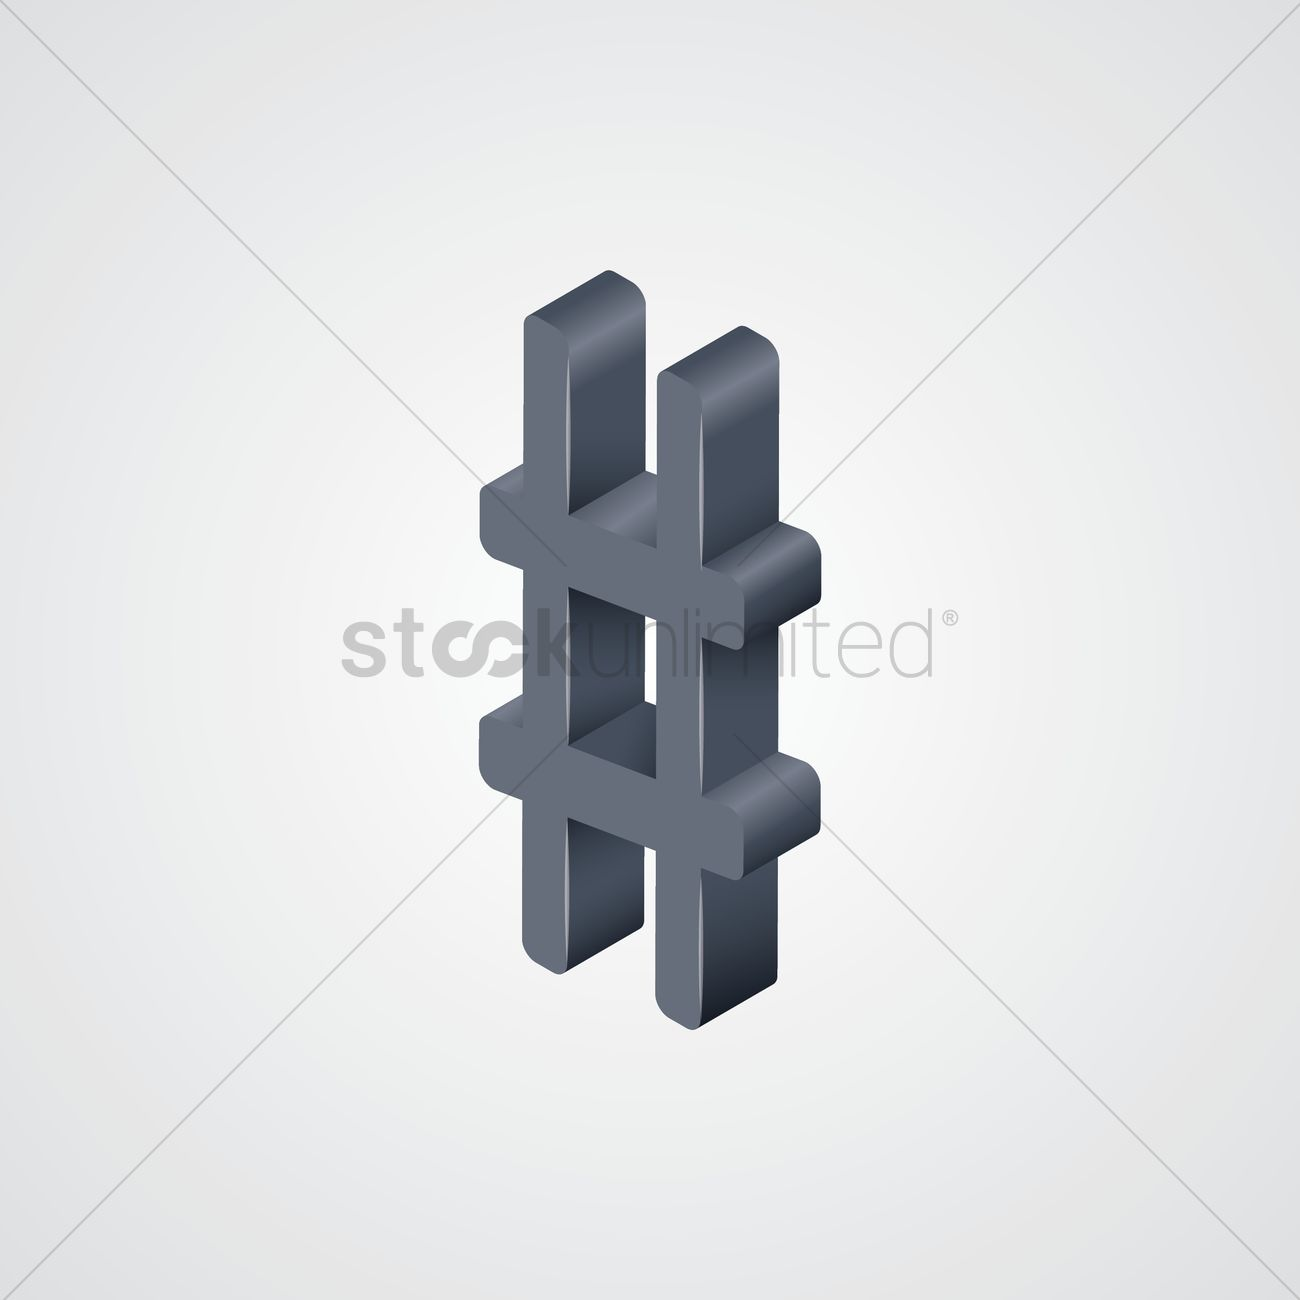 Sharp Music Note Vector Image 1630117 Stockunlimited